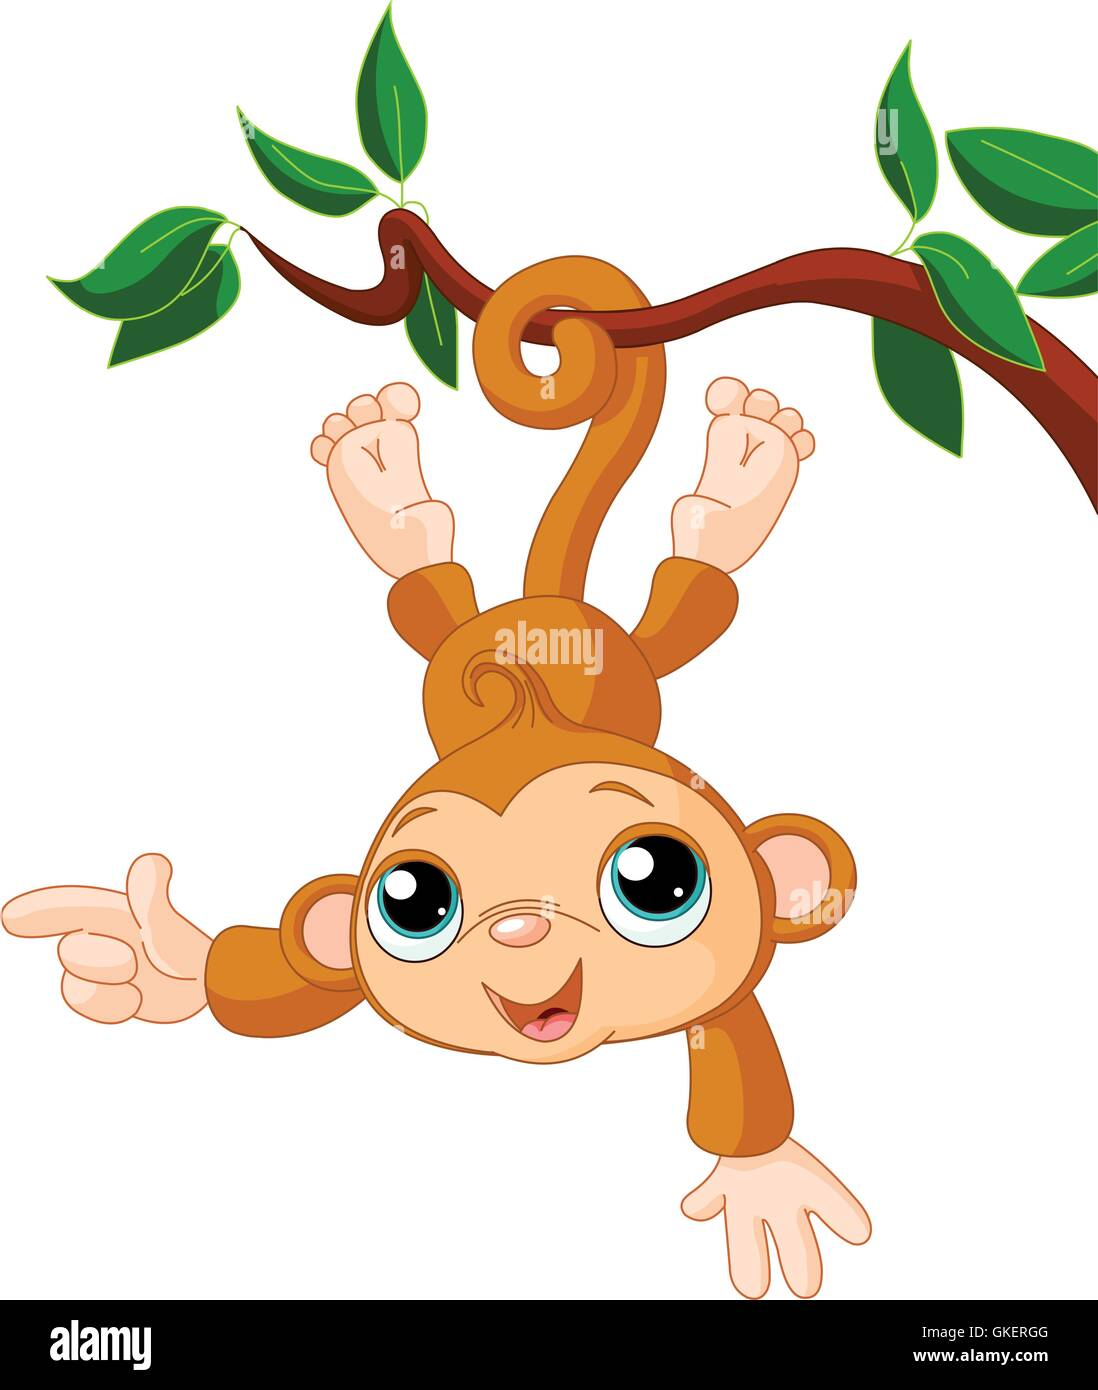 Monkey Swinging Tree Cut Out Stock Images Pictures Alamy